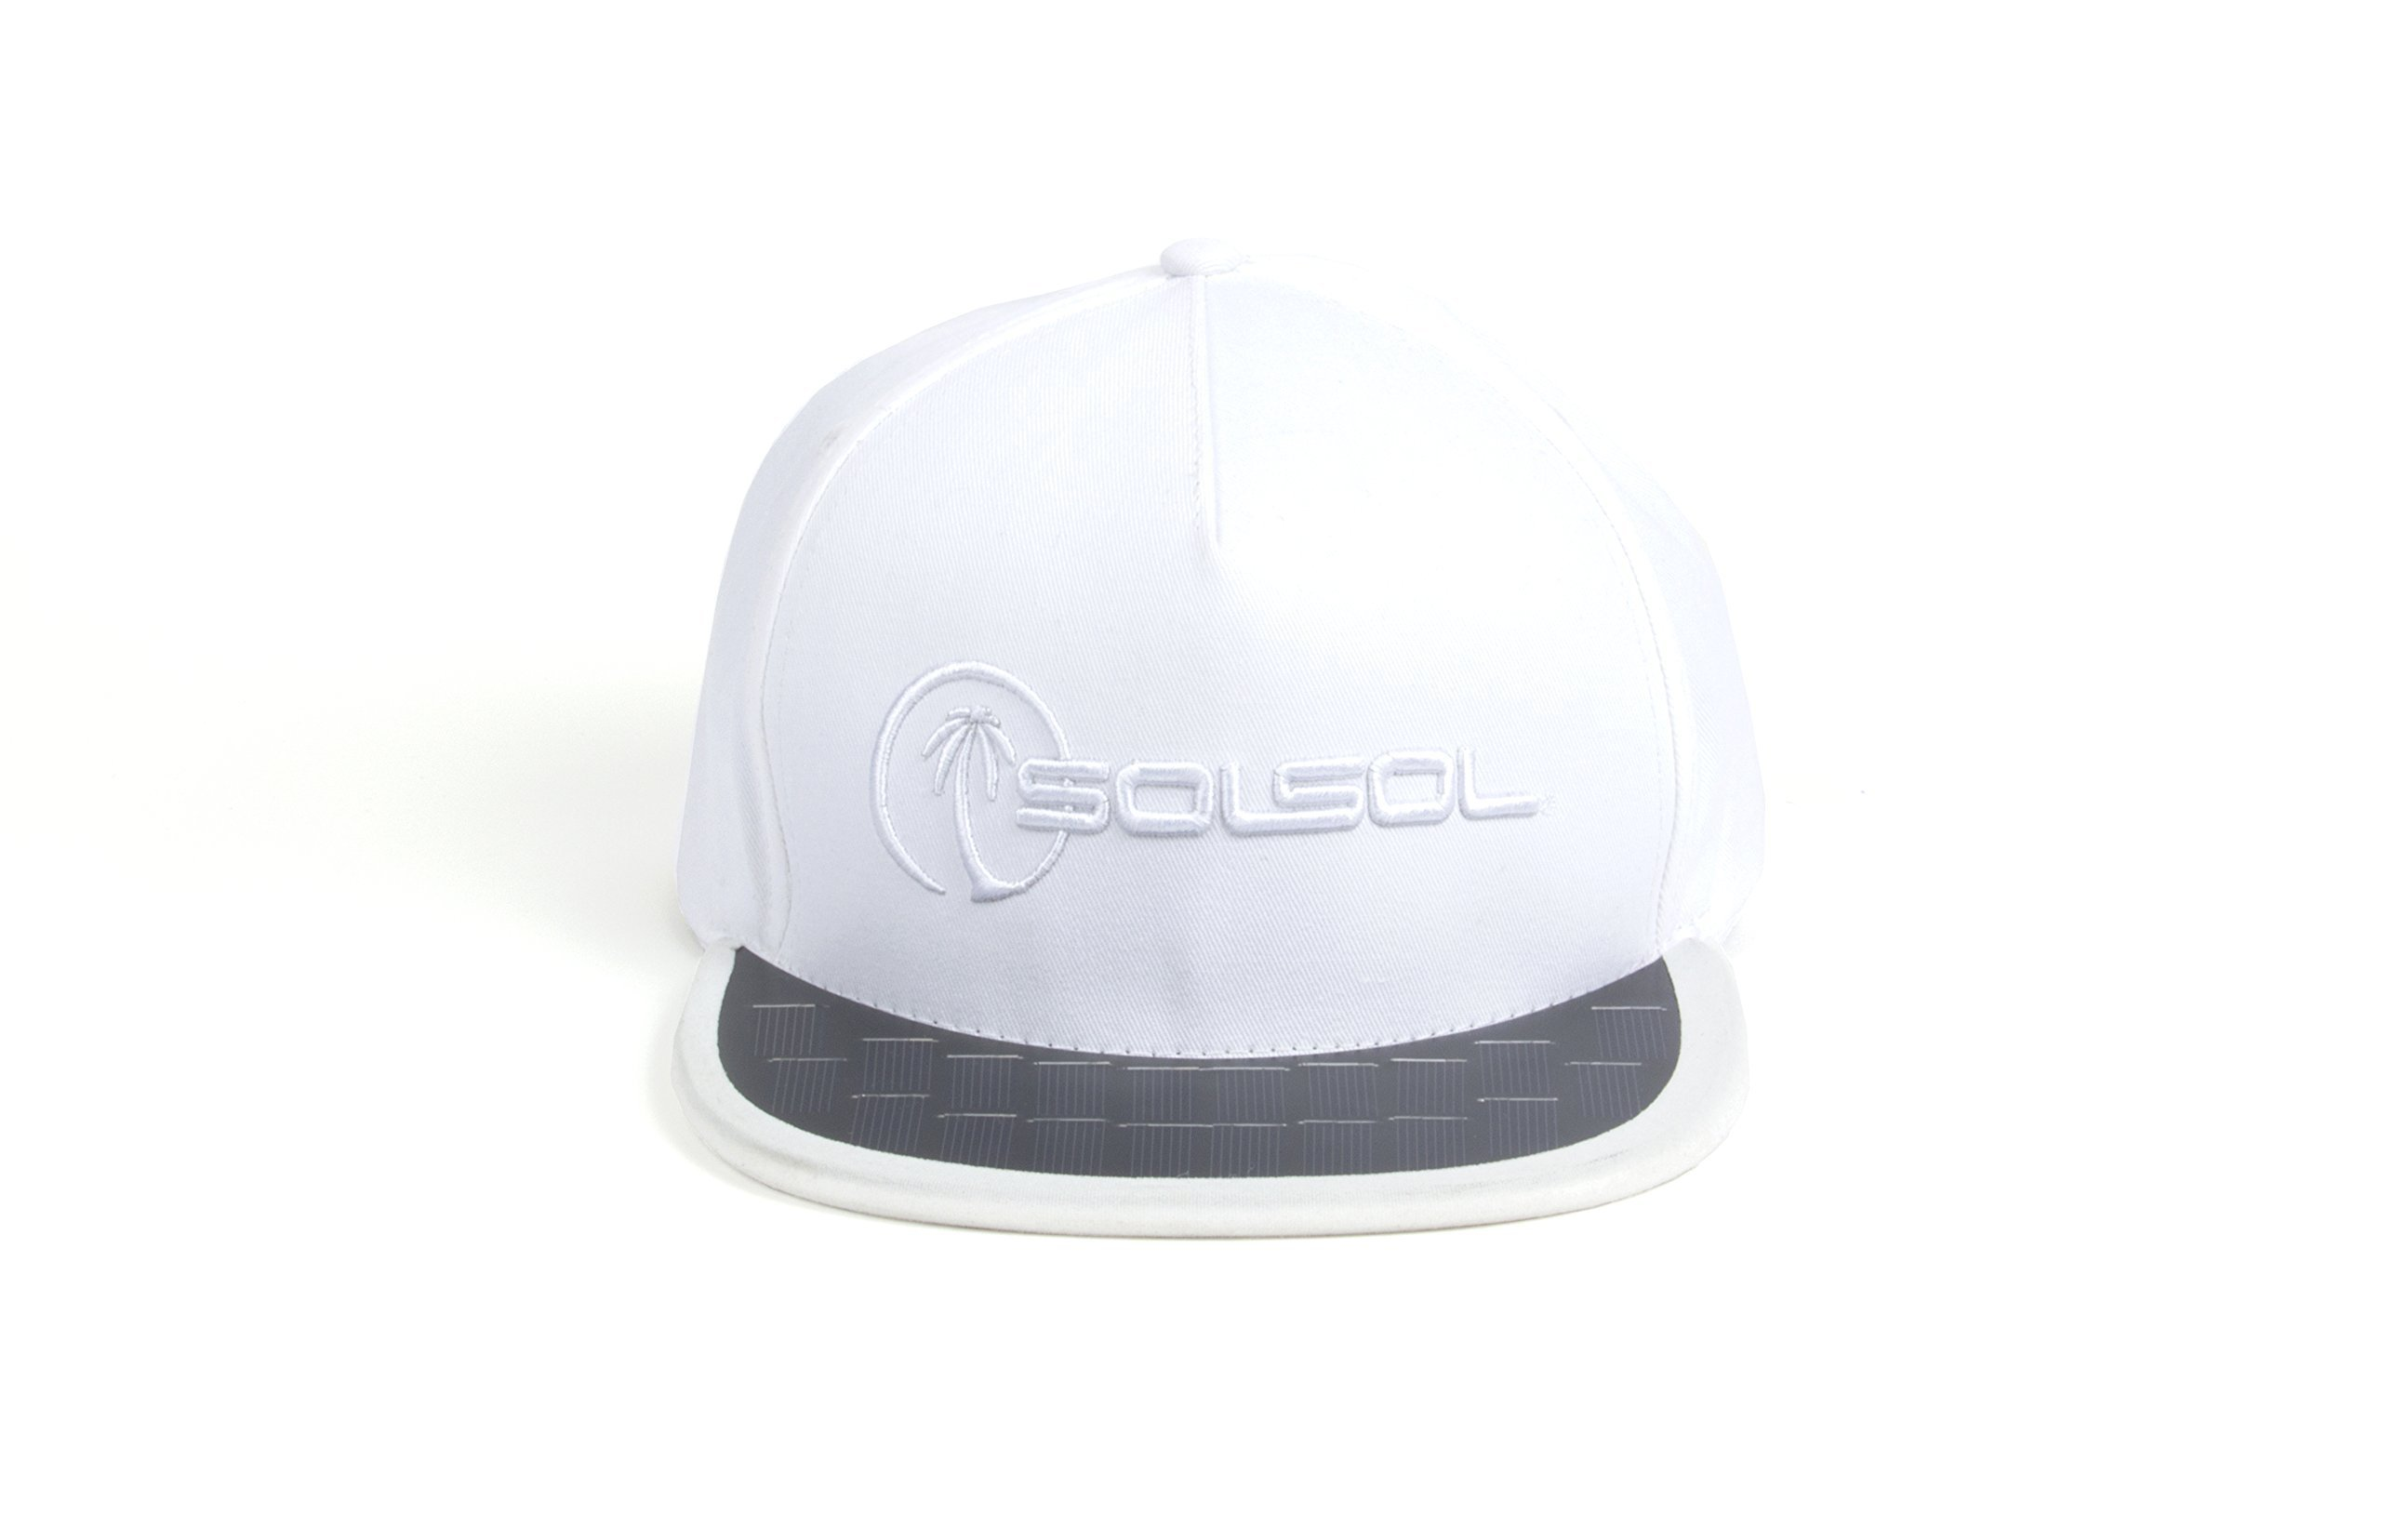 Solsol Solar Hat Charger For Iphone And Android Smartphones White/White 12